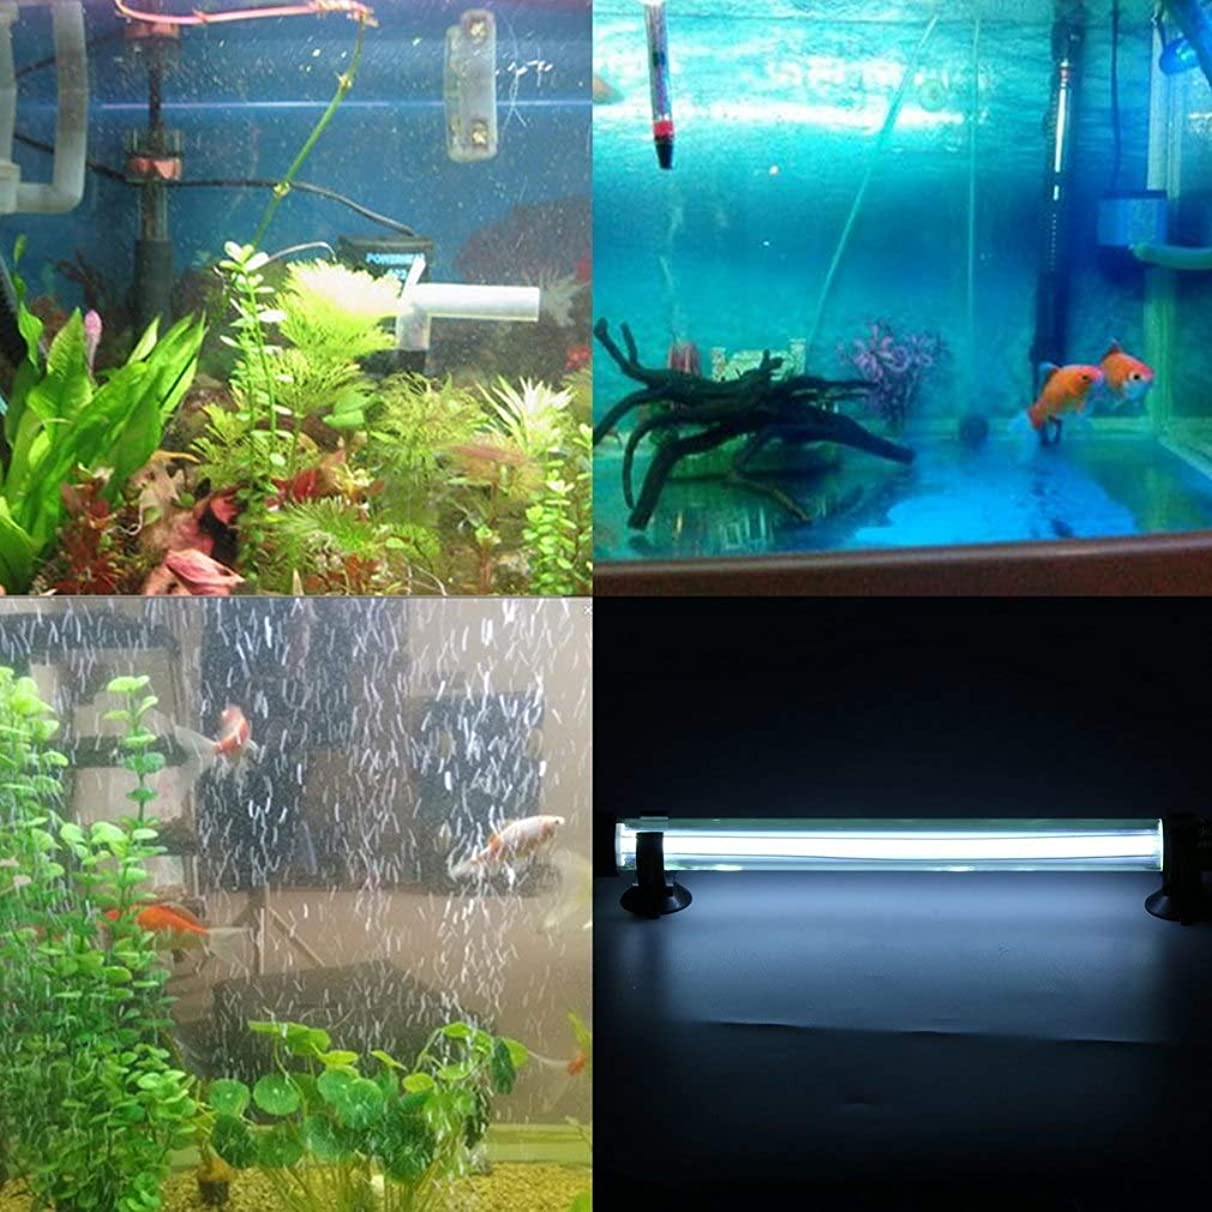 Toolso 15W Waterproof Water Filter Cleaner Aquarium Fish Tank Collection UV Sterilizer Ultraviolet Lamp EU/US Plug